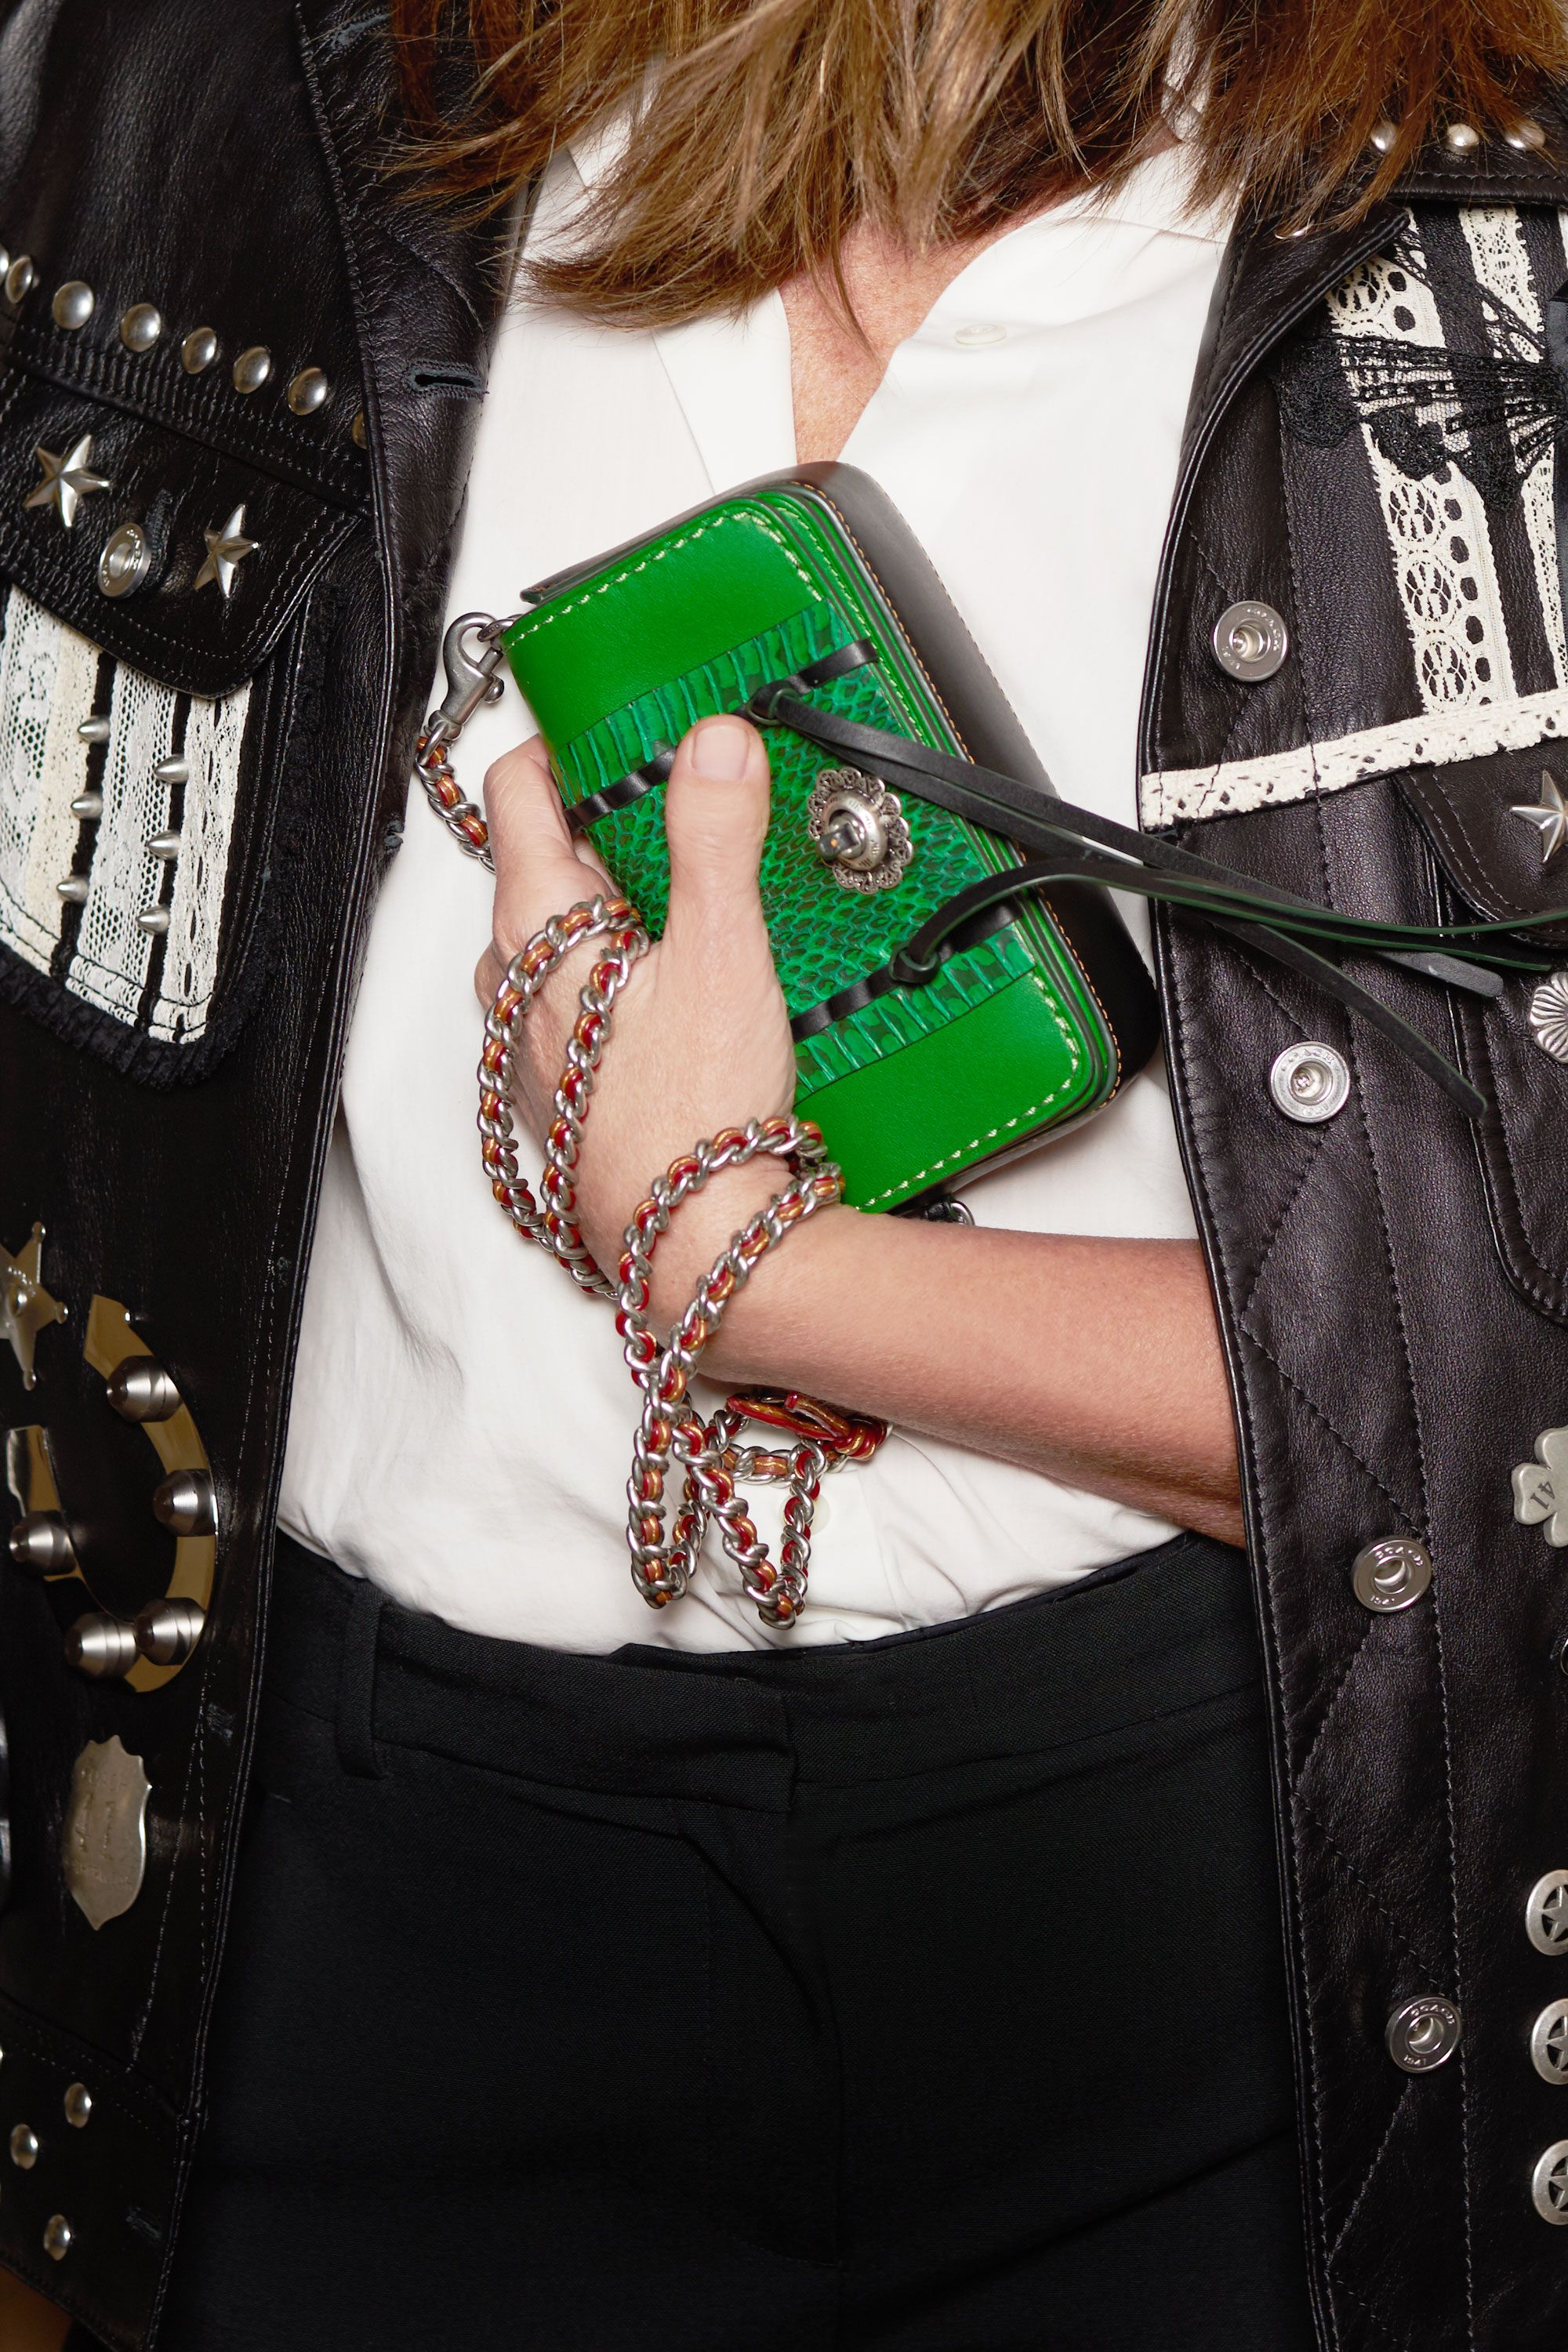 """<p>Repeat after us: Less is more. Garcia and some of the best-dressed women in the fashion week front rows often arrive to with little more than their invitation and a cell phone in-hand. The takeaway here is editing down your life's essentials to fit inside a mini bag. Garcia's crossbody adds a fun pop of color to her monochrome outfit—and offers hands-free functionality. <em data-redactor-tag=""""em"""">Coach Whipstitch Snake Dinkier, $550, <a href=""""http://www.coach.com/shop/women-coach1941-new-arrivals?CID=D_B_MRC_12405"""" target=""""_blank"""" data-tracking-id=""""recirc-text-link"""">coach.com</a></em></p>"""